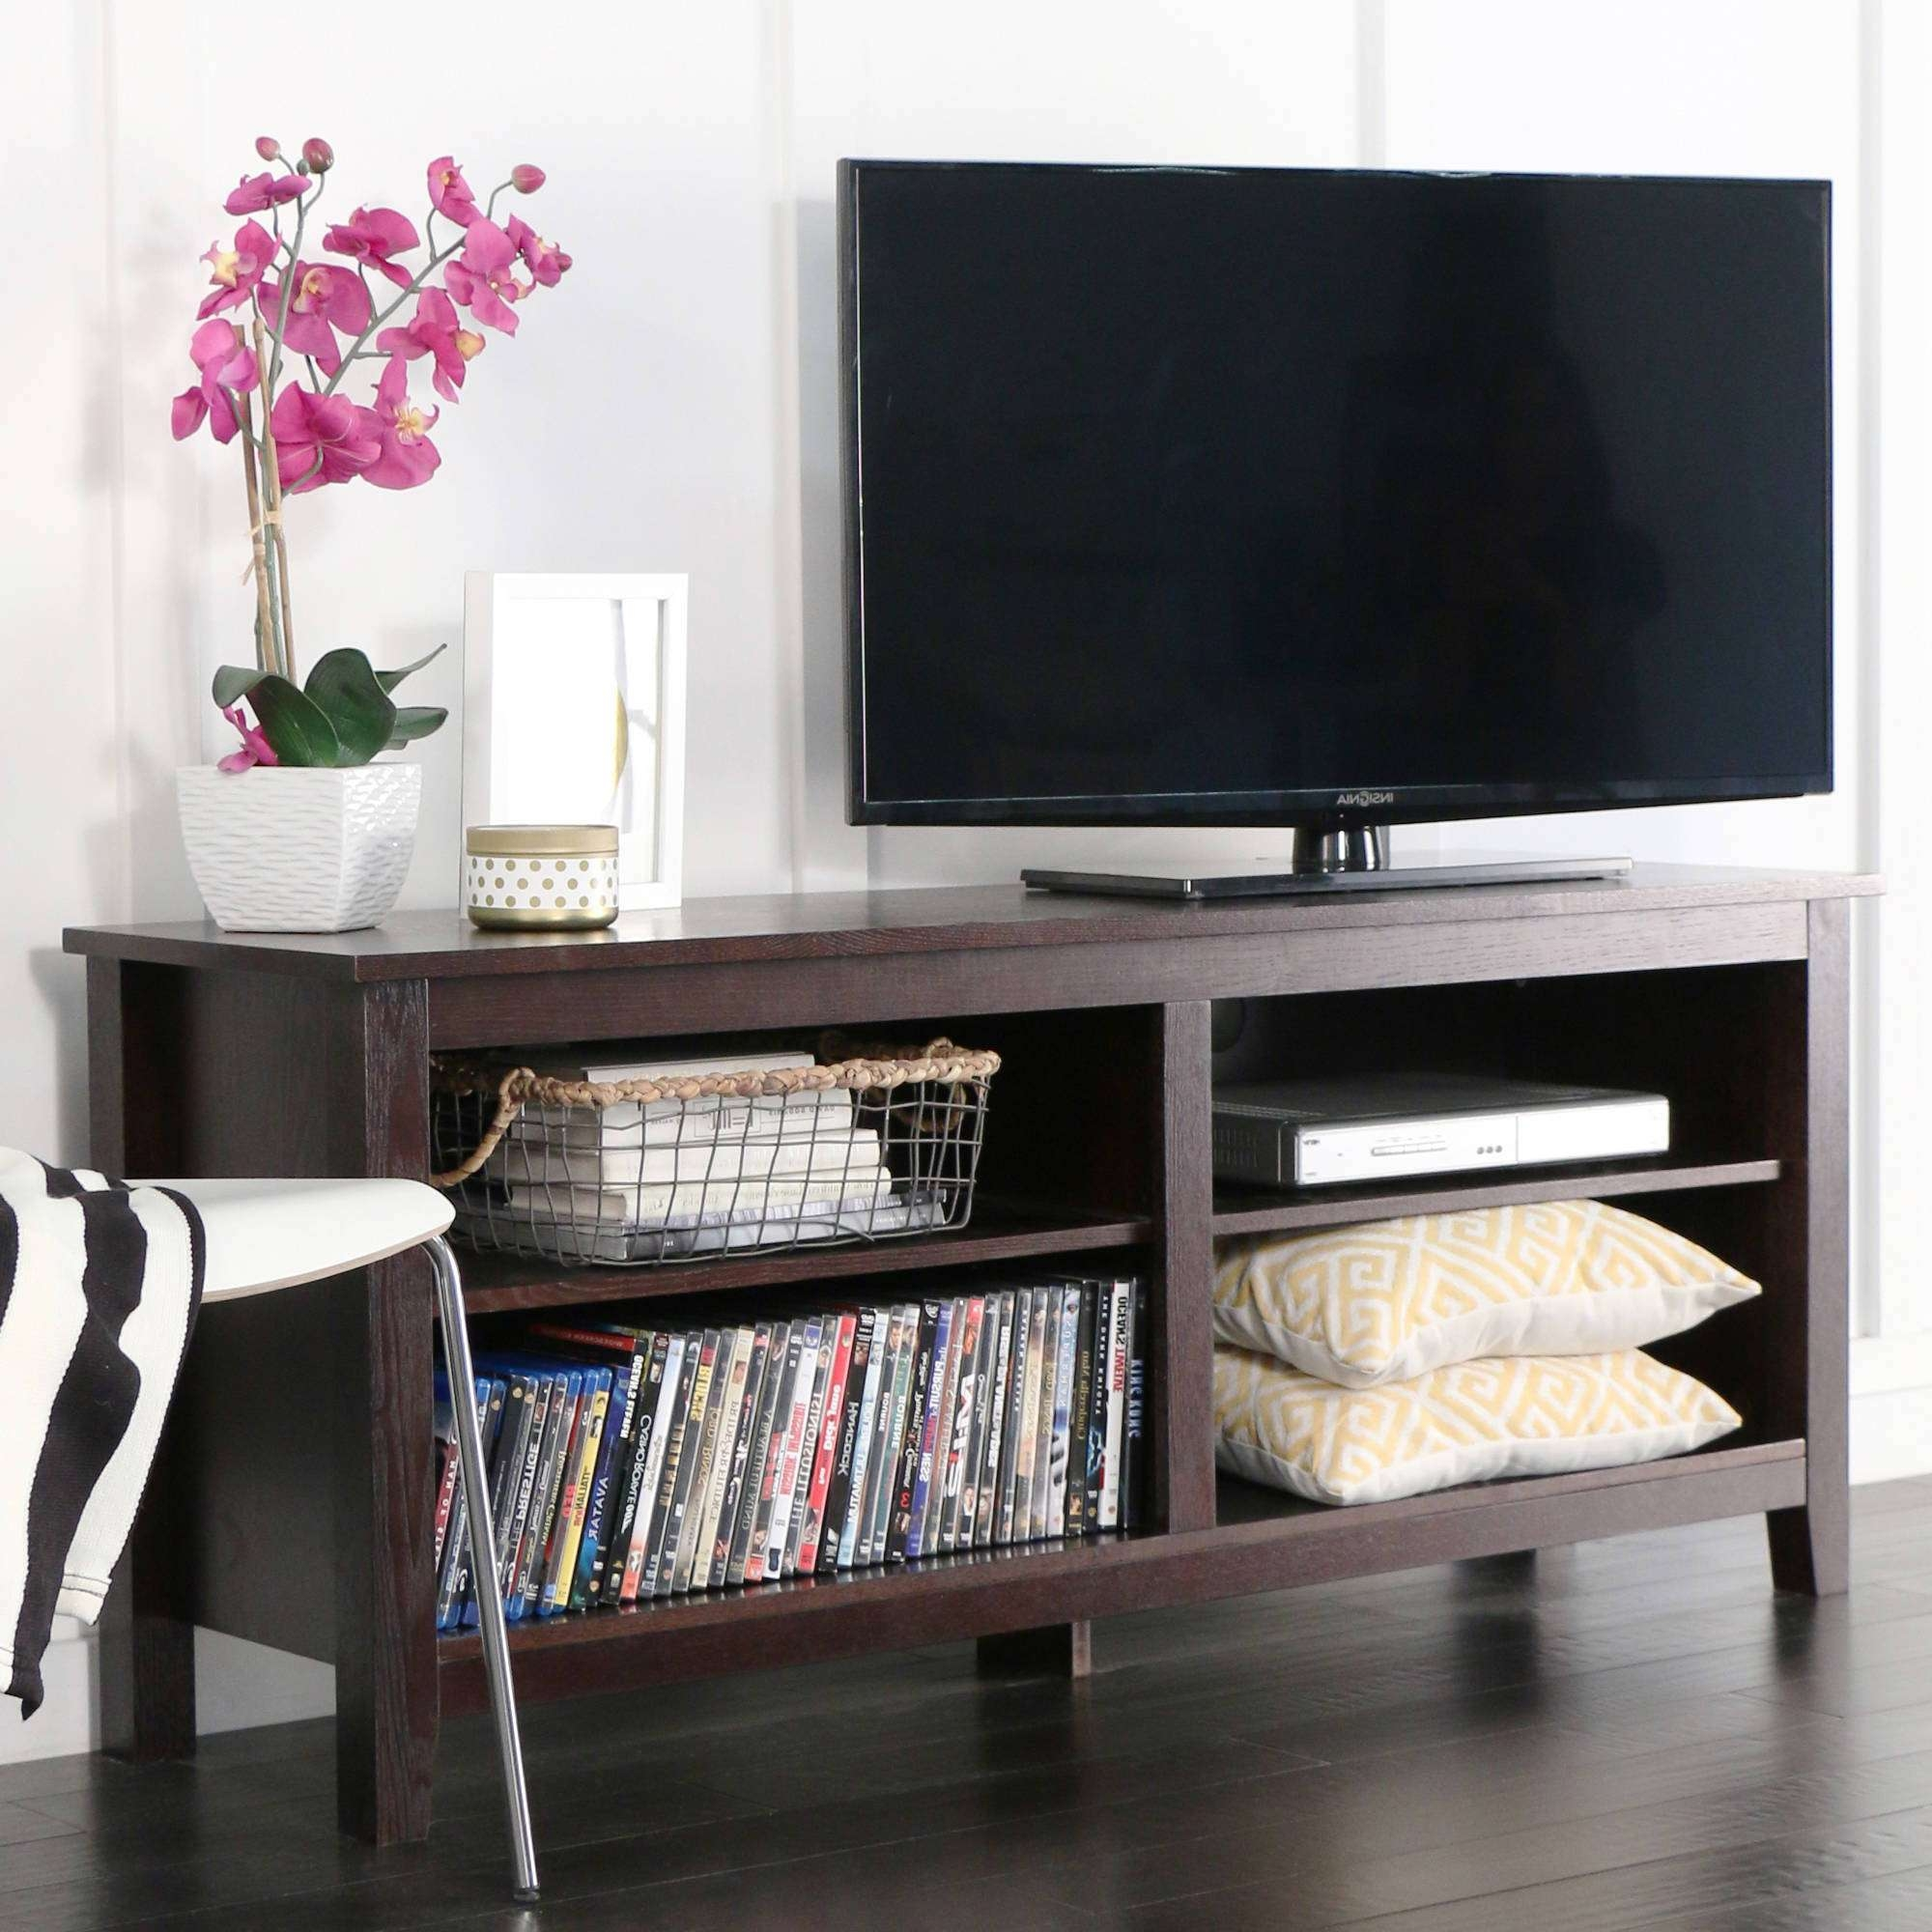 Tv : Square Tv Stands Tremendous Square Tv Stands' Likable Square For Square Tv Stands (View 13 of 15)